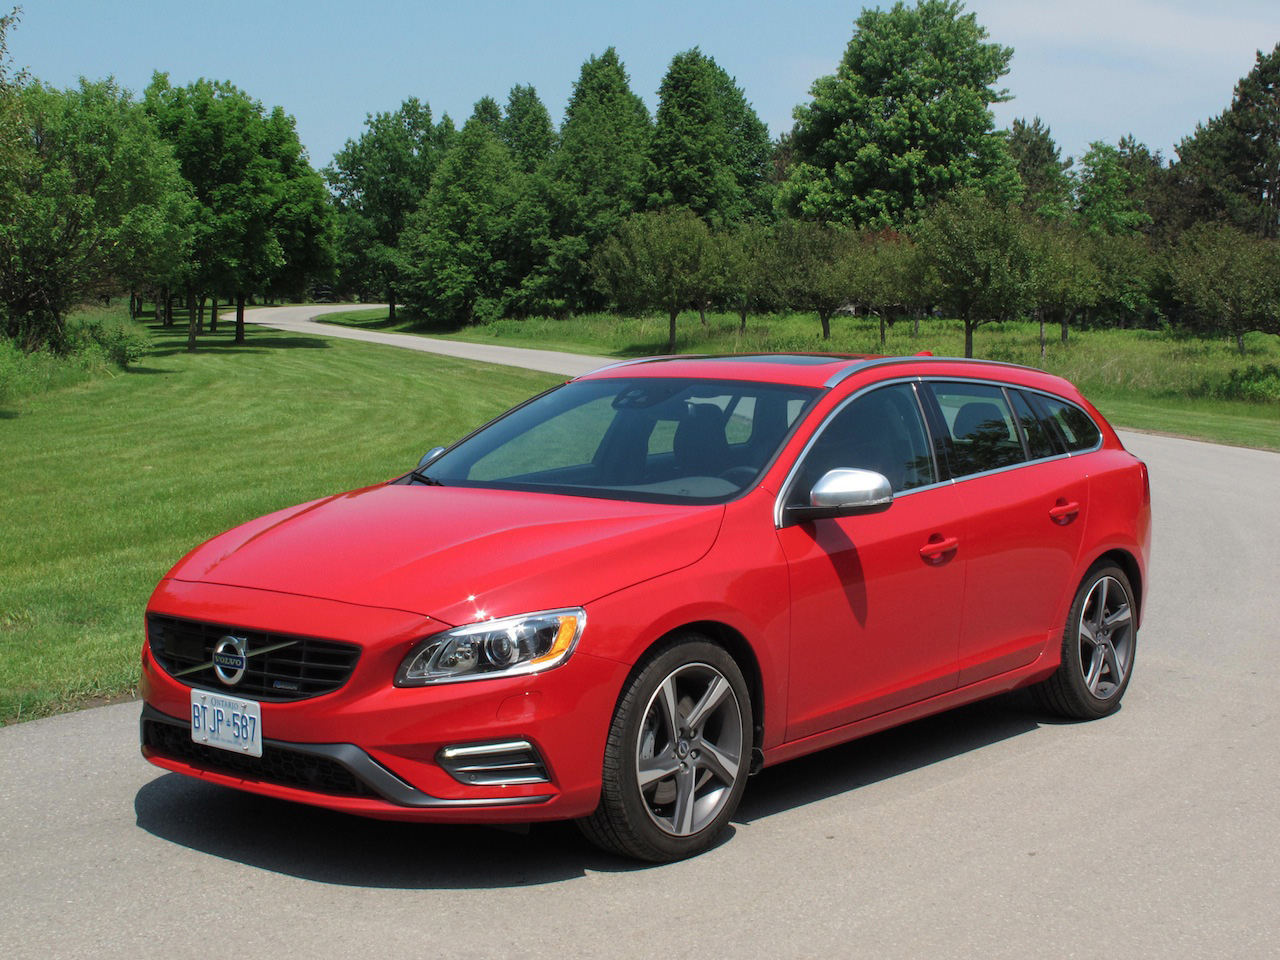 2015 Volvo V60 T6 R Design Photoshoot Cars Photos Test